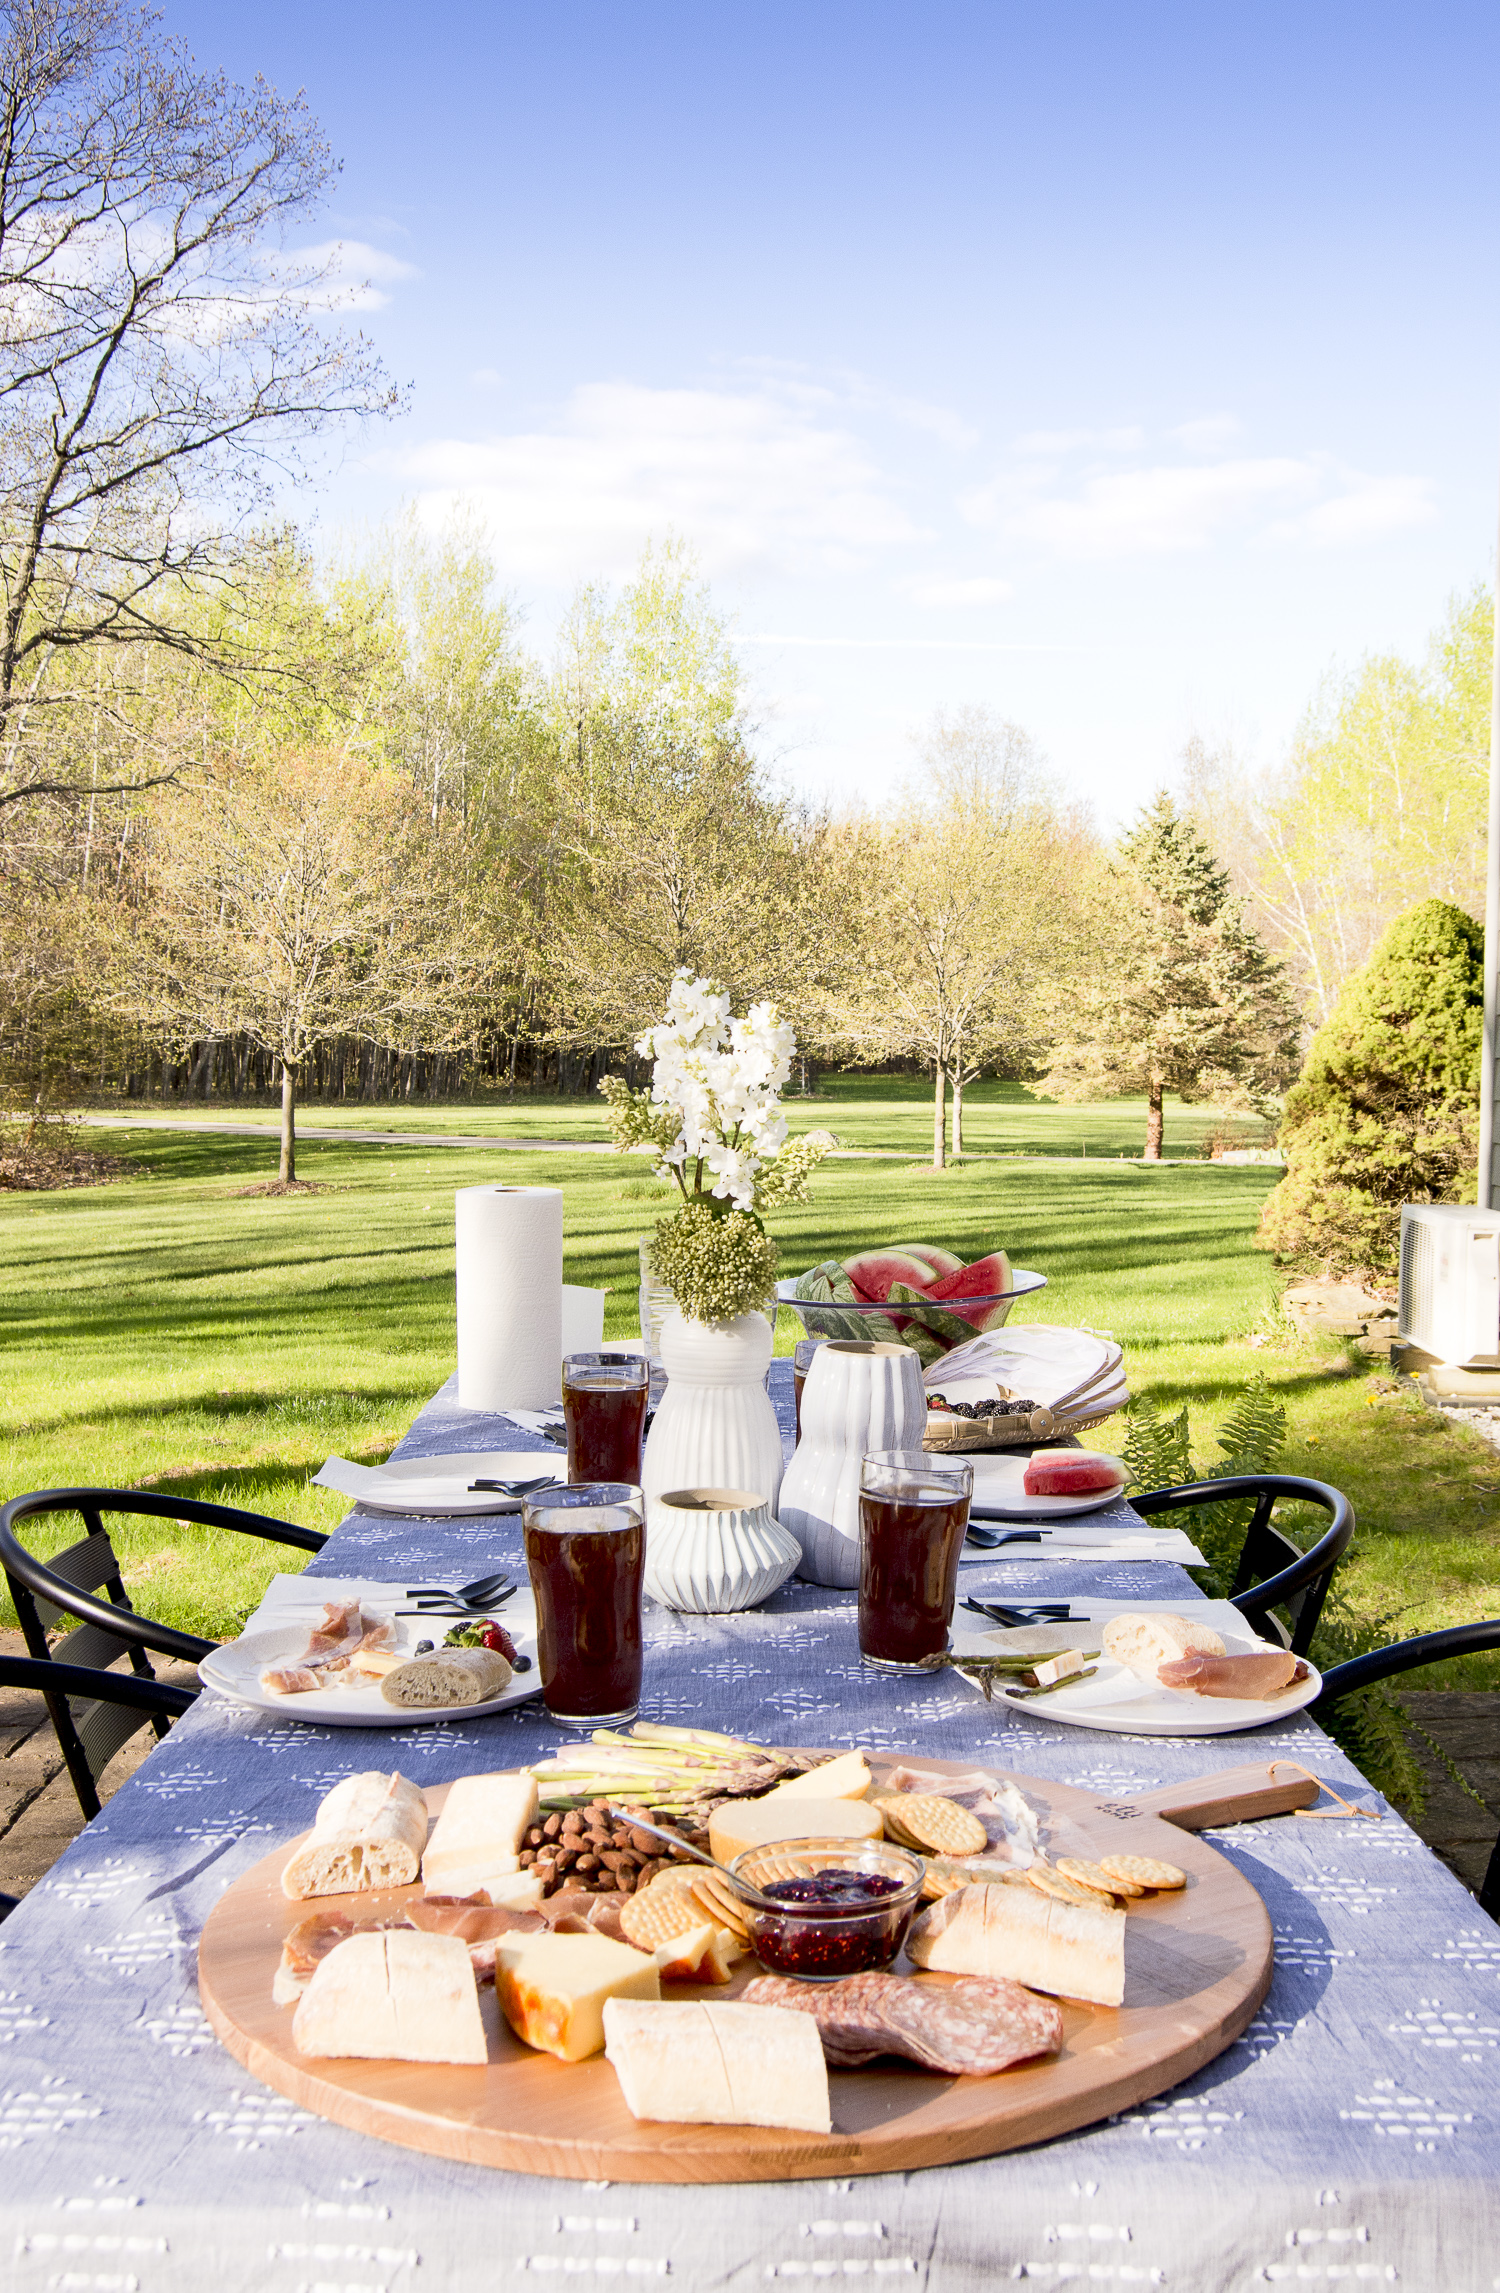 Beautiful table with charcuterie board kellyelko.com #charcuterie #outdoordining #outdoordecor #tablesetting #outdoors #backyarddecor